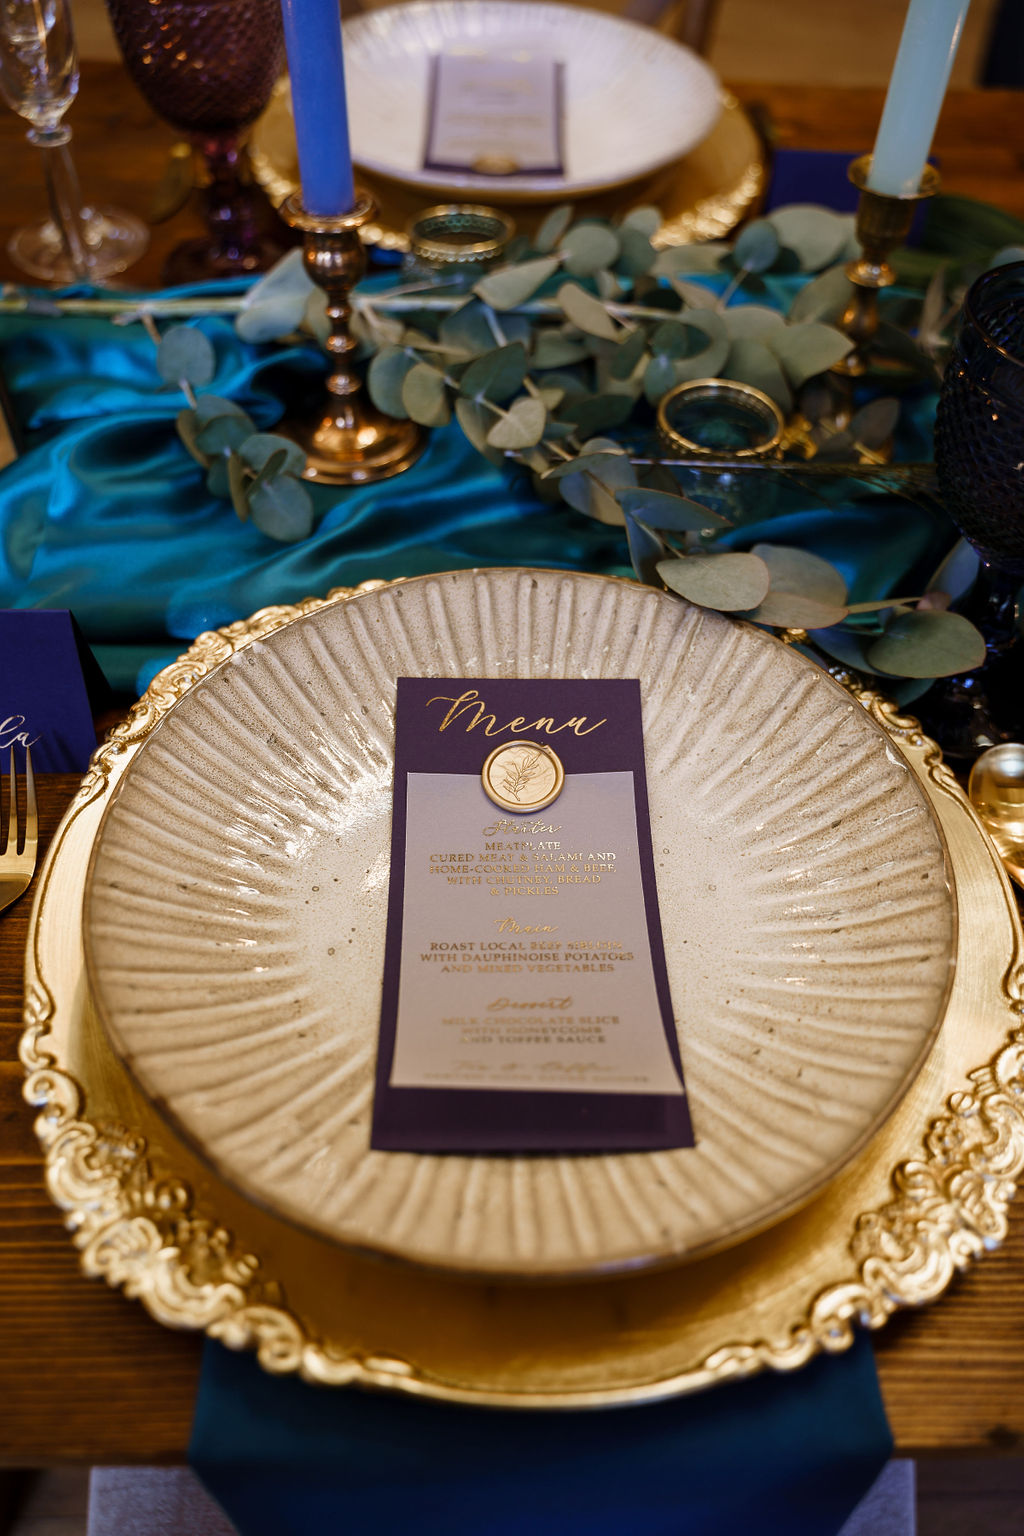 peacock themed wedding - peacock wedding - unique wedding colour scheme - quirky wedding - luxurious wedding - unique wedding menu- gold wedding cutlery